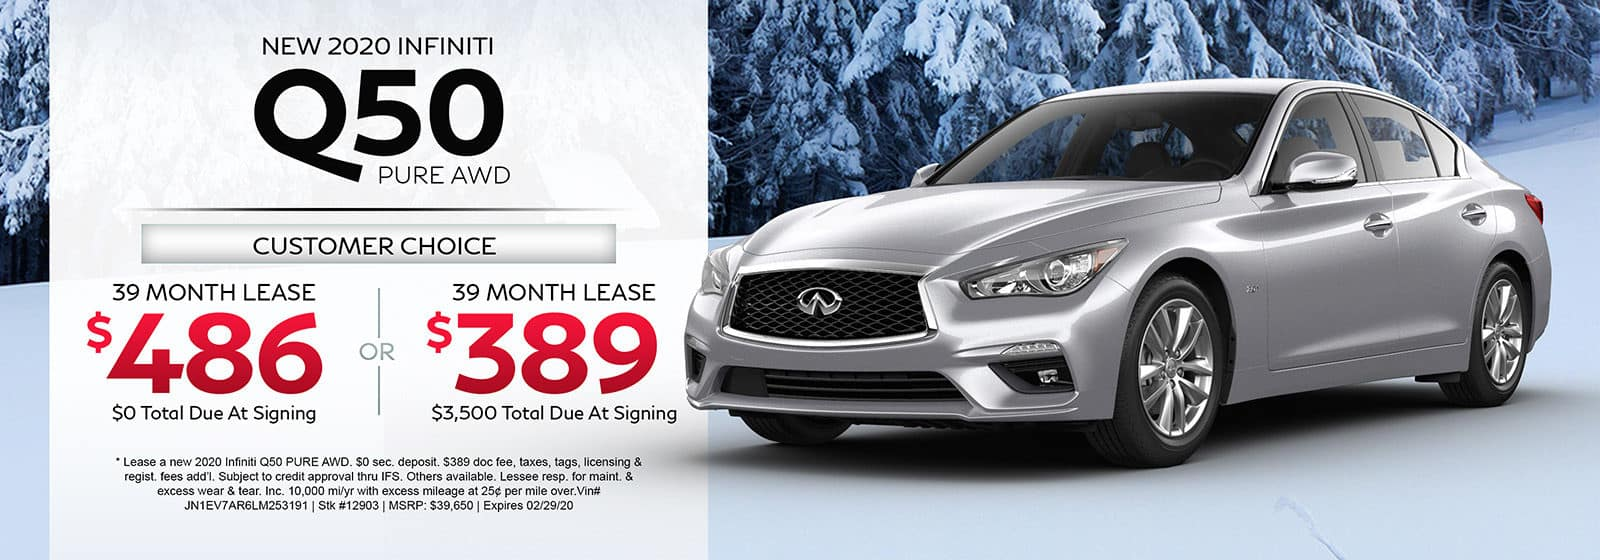 Lease a new 2020 INFINITI Q50 PURE AWD for 39 months.